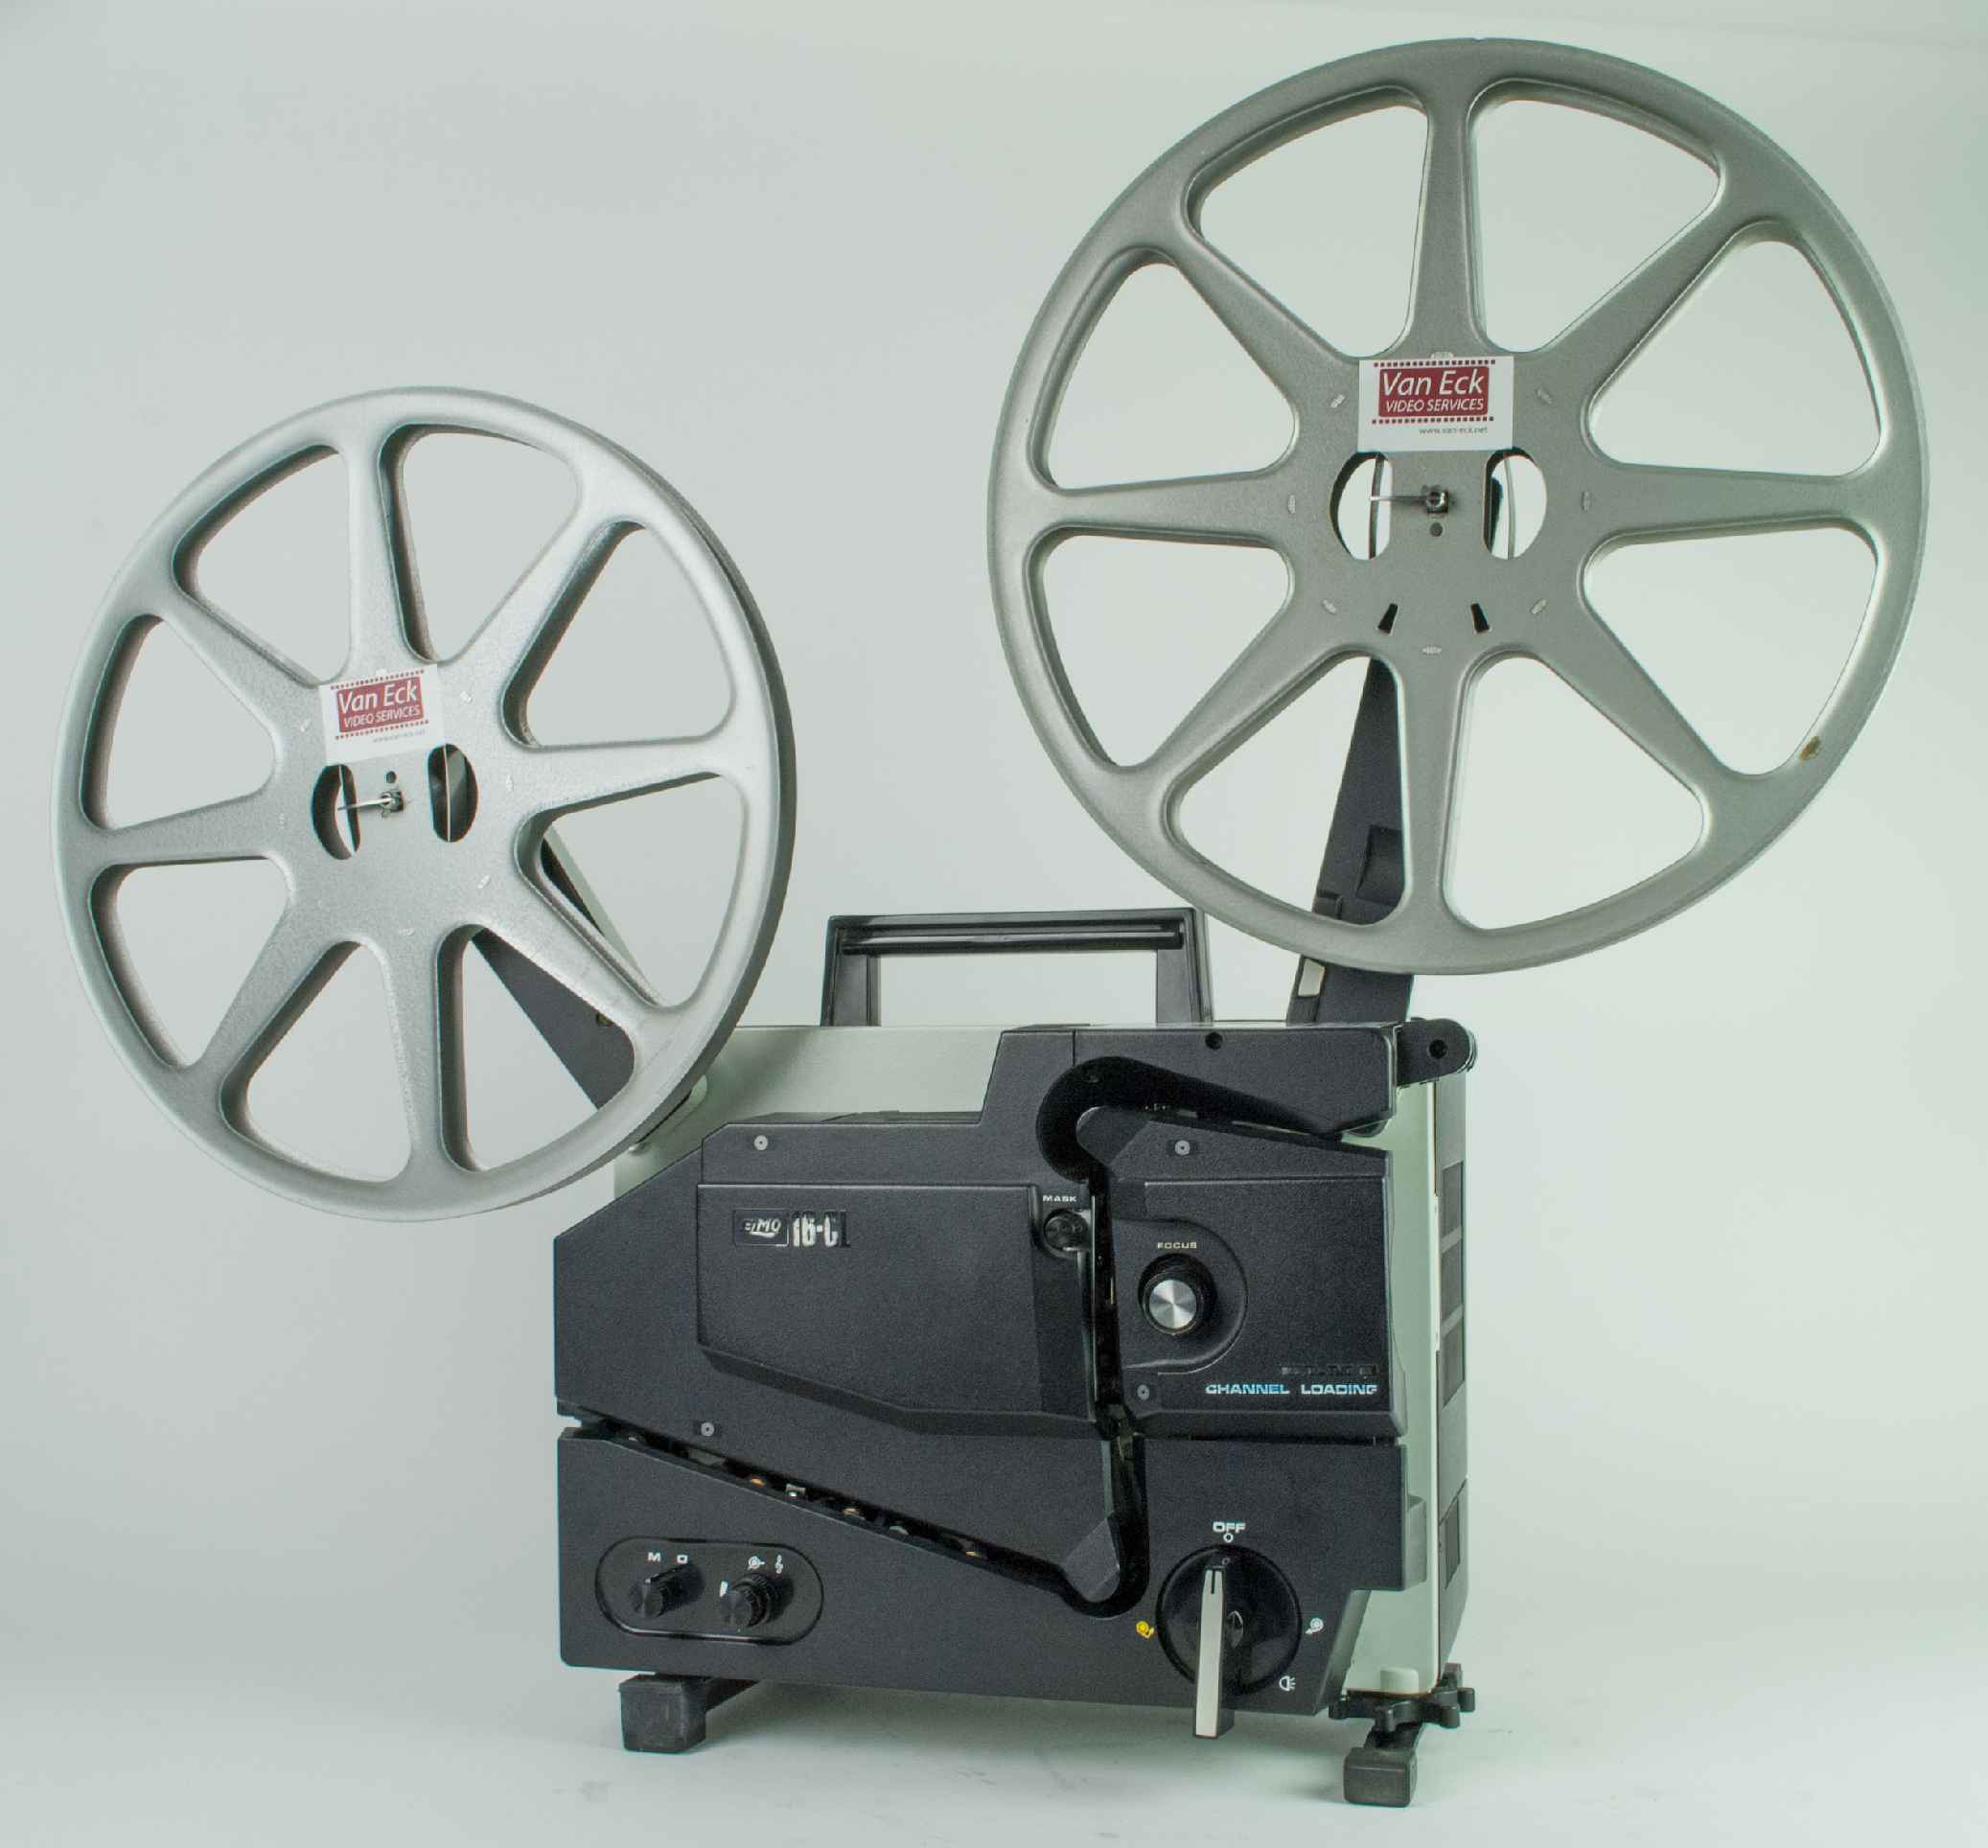 Elmo 16-CL film projector